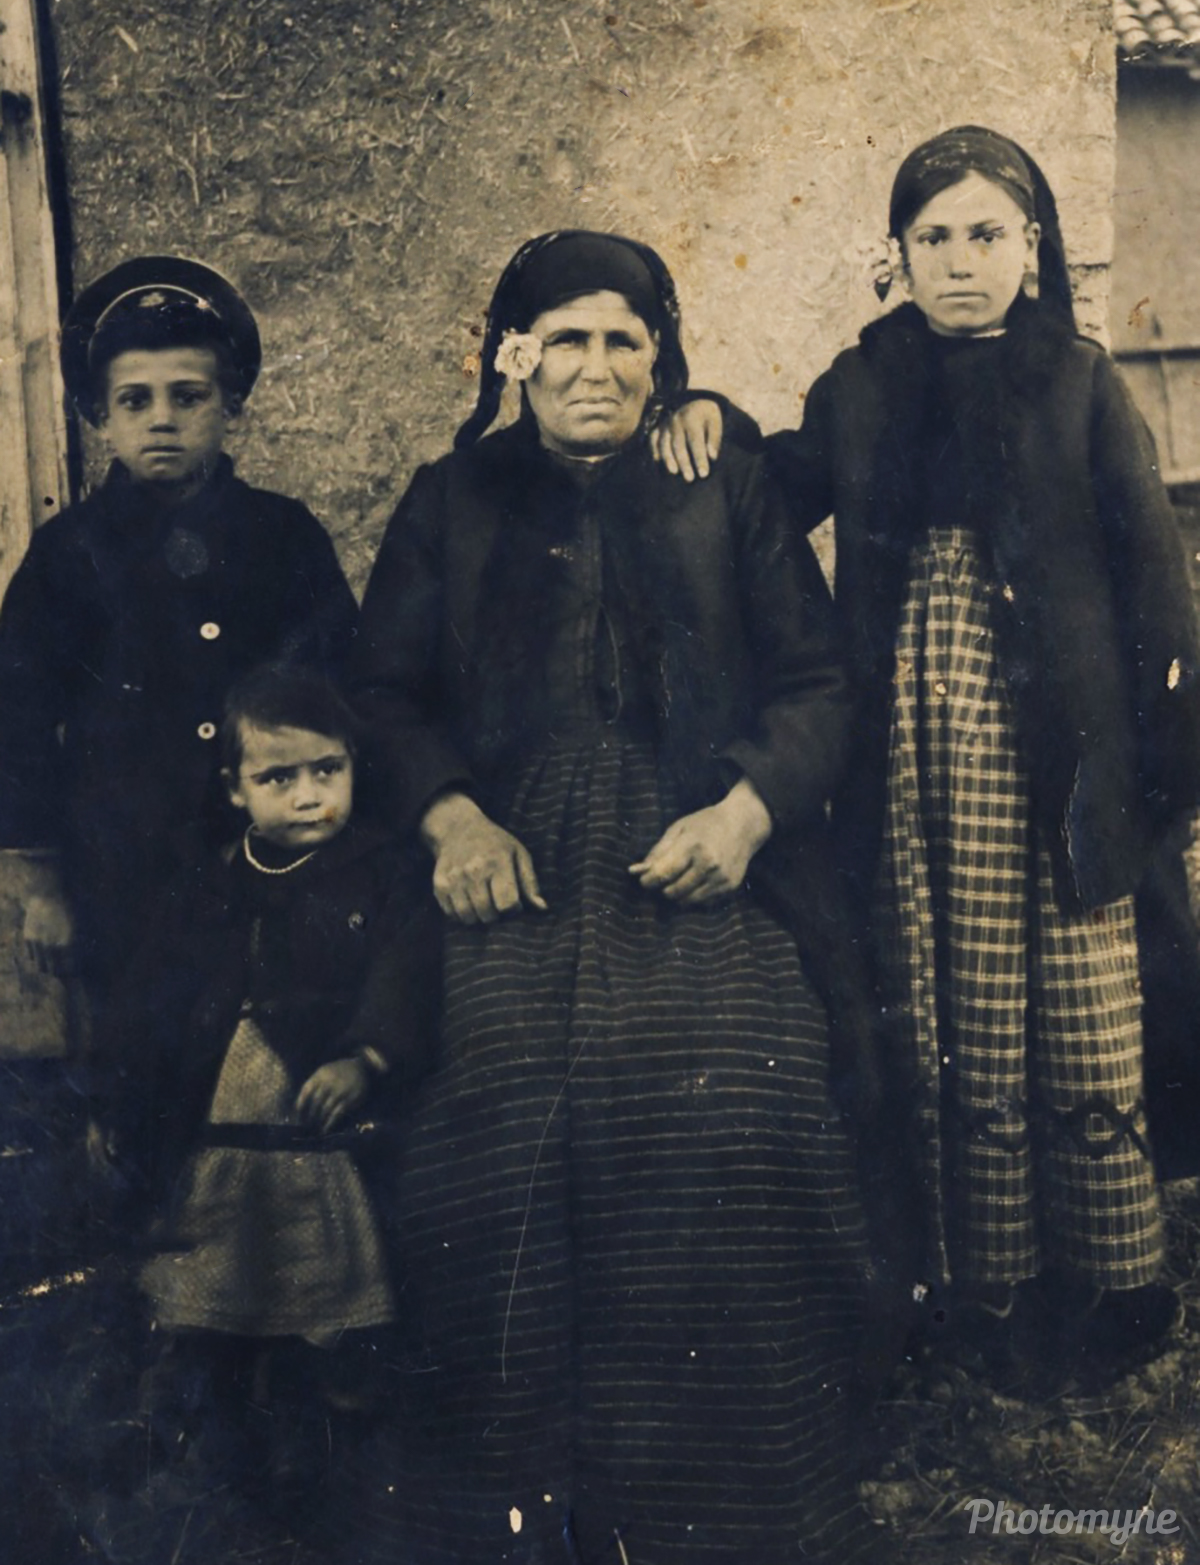 The family of my grandfather Naiden Toskov. Plovdiv, Bulgaria 1928